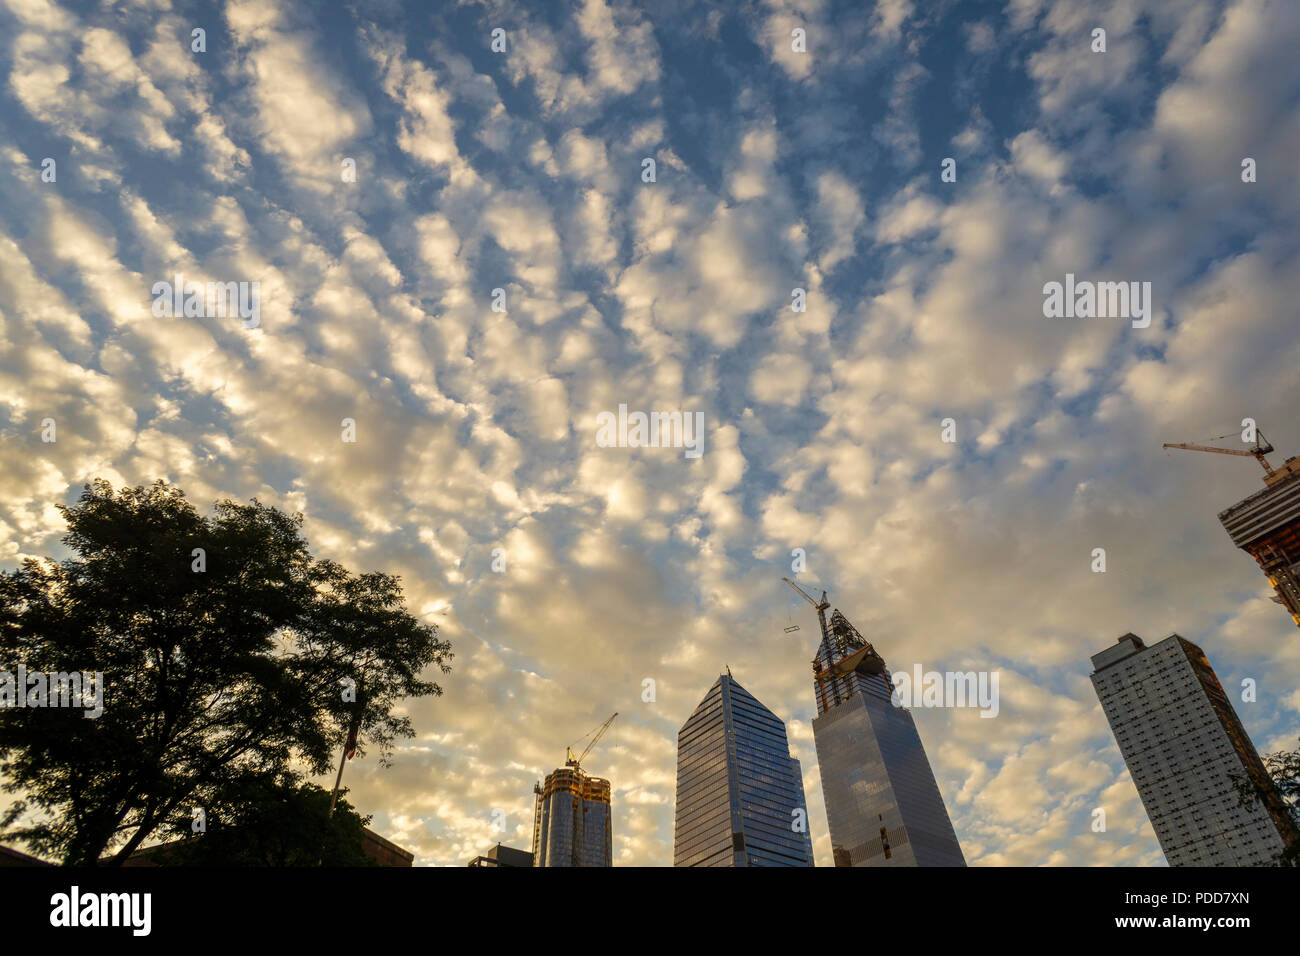 The Hudson Yards development on the west side of Manhattan in New York canopied by an altocumulus cloud formation at sunset on Tuesday, July 31, 2018.  (© Richard B. Levine) - Stock Image